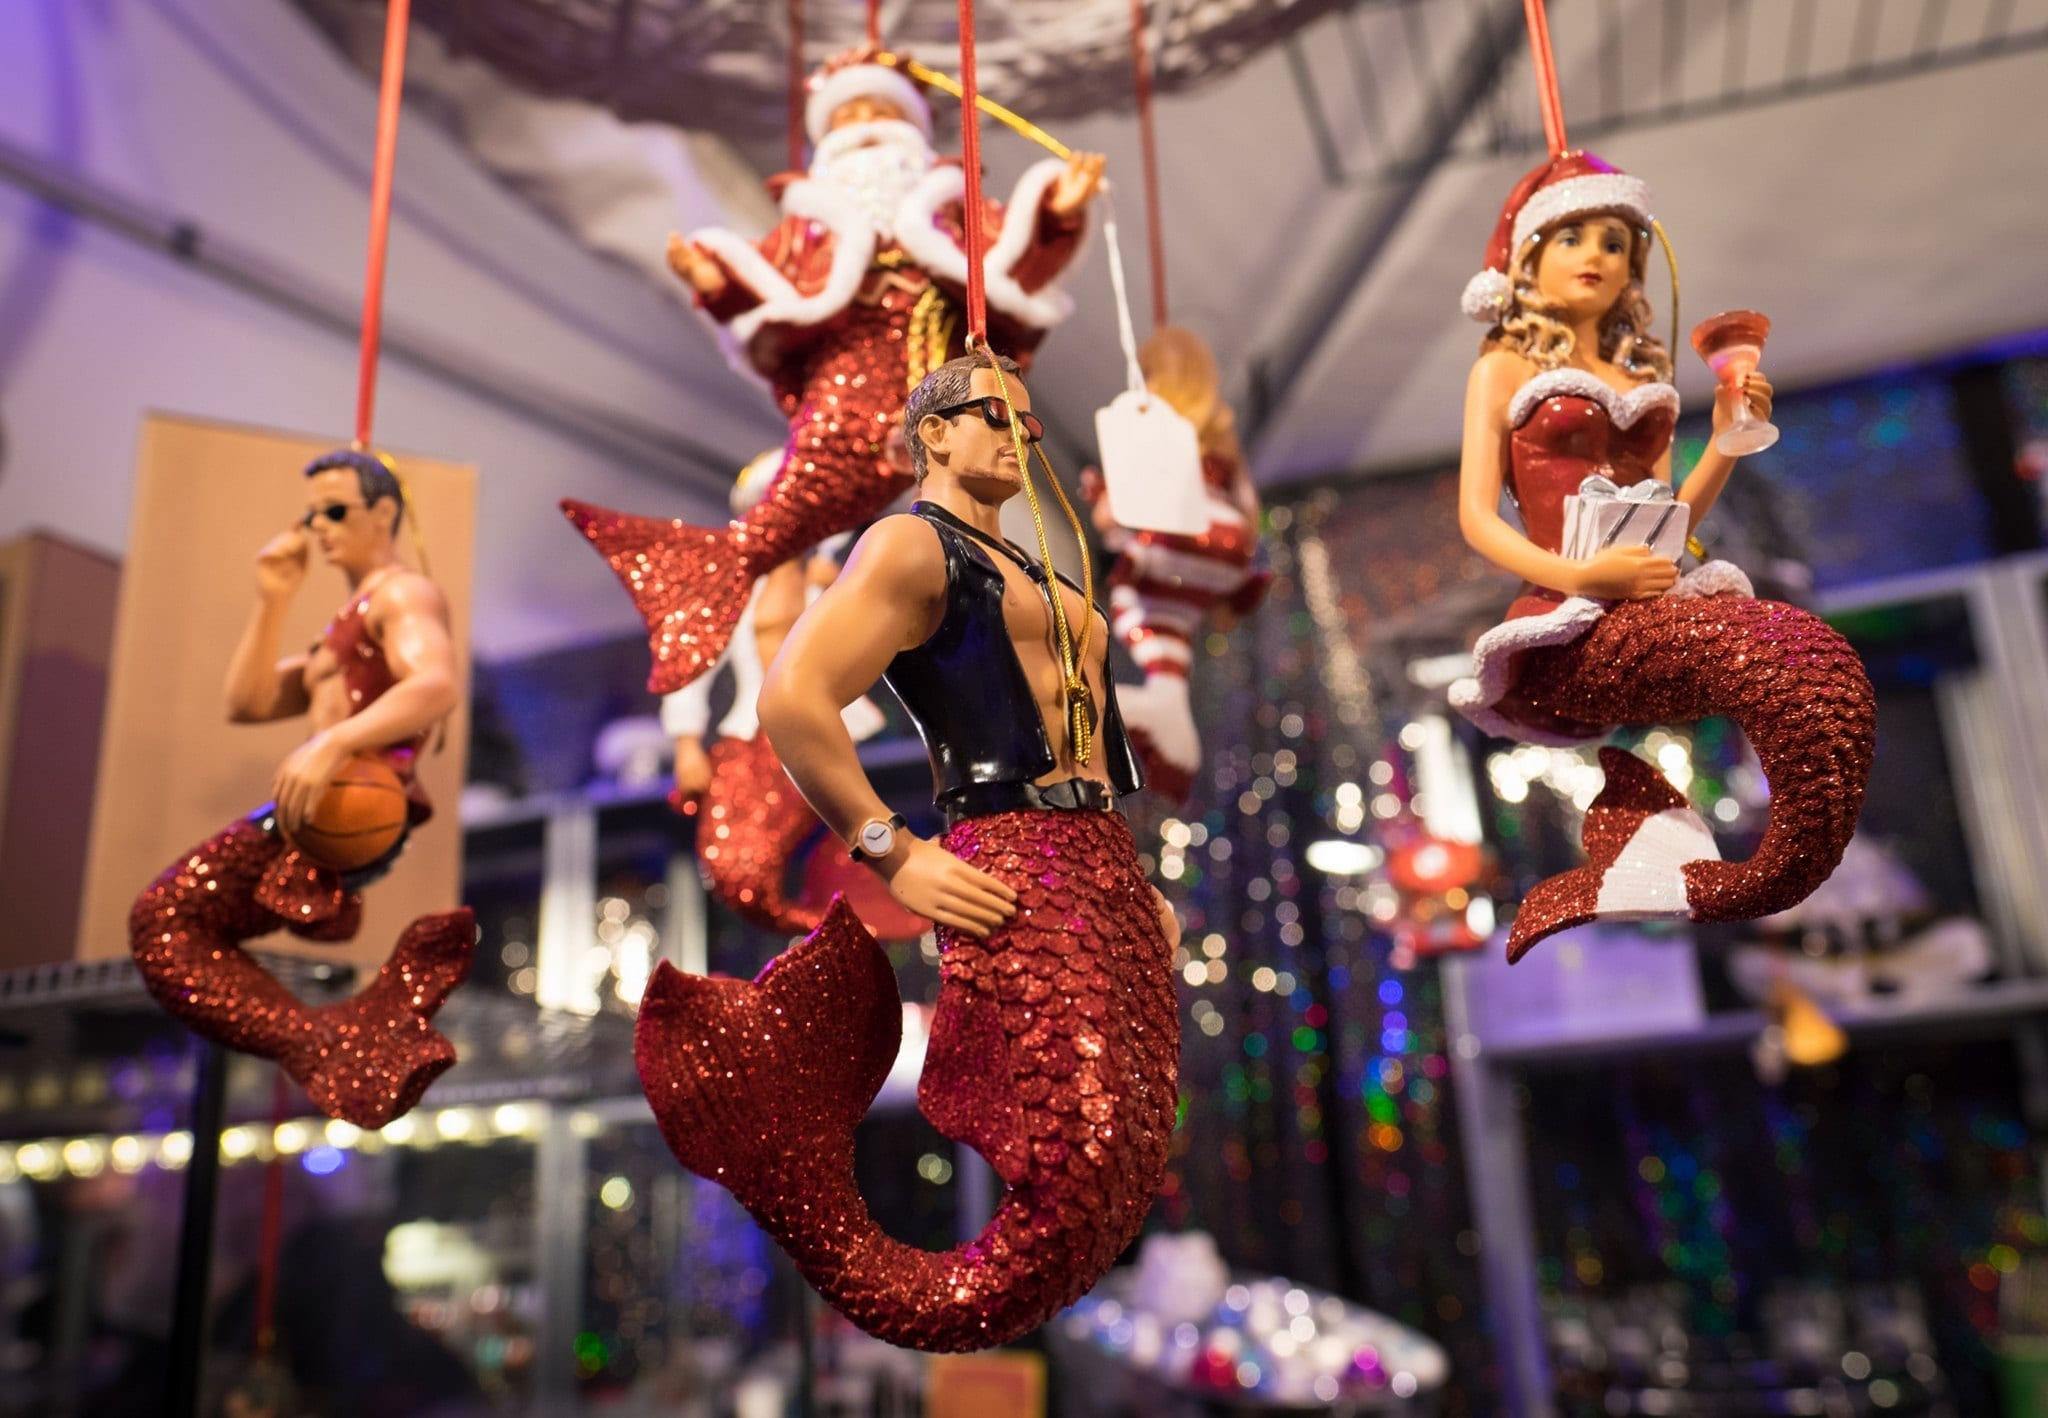 Sexy Mermen Ornaments Christmas in Bavaria